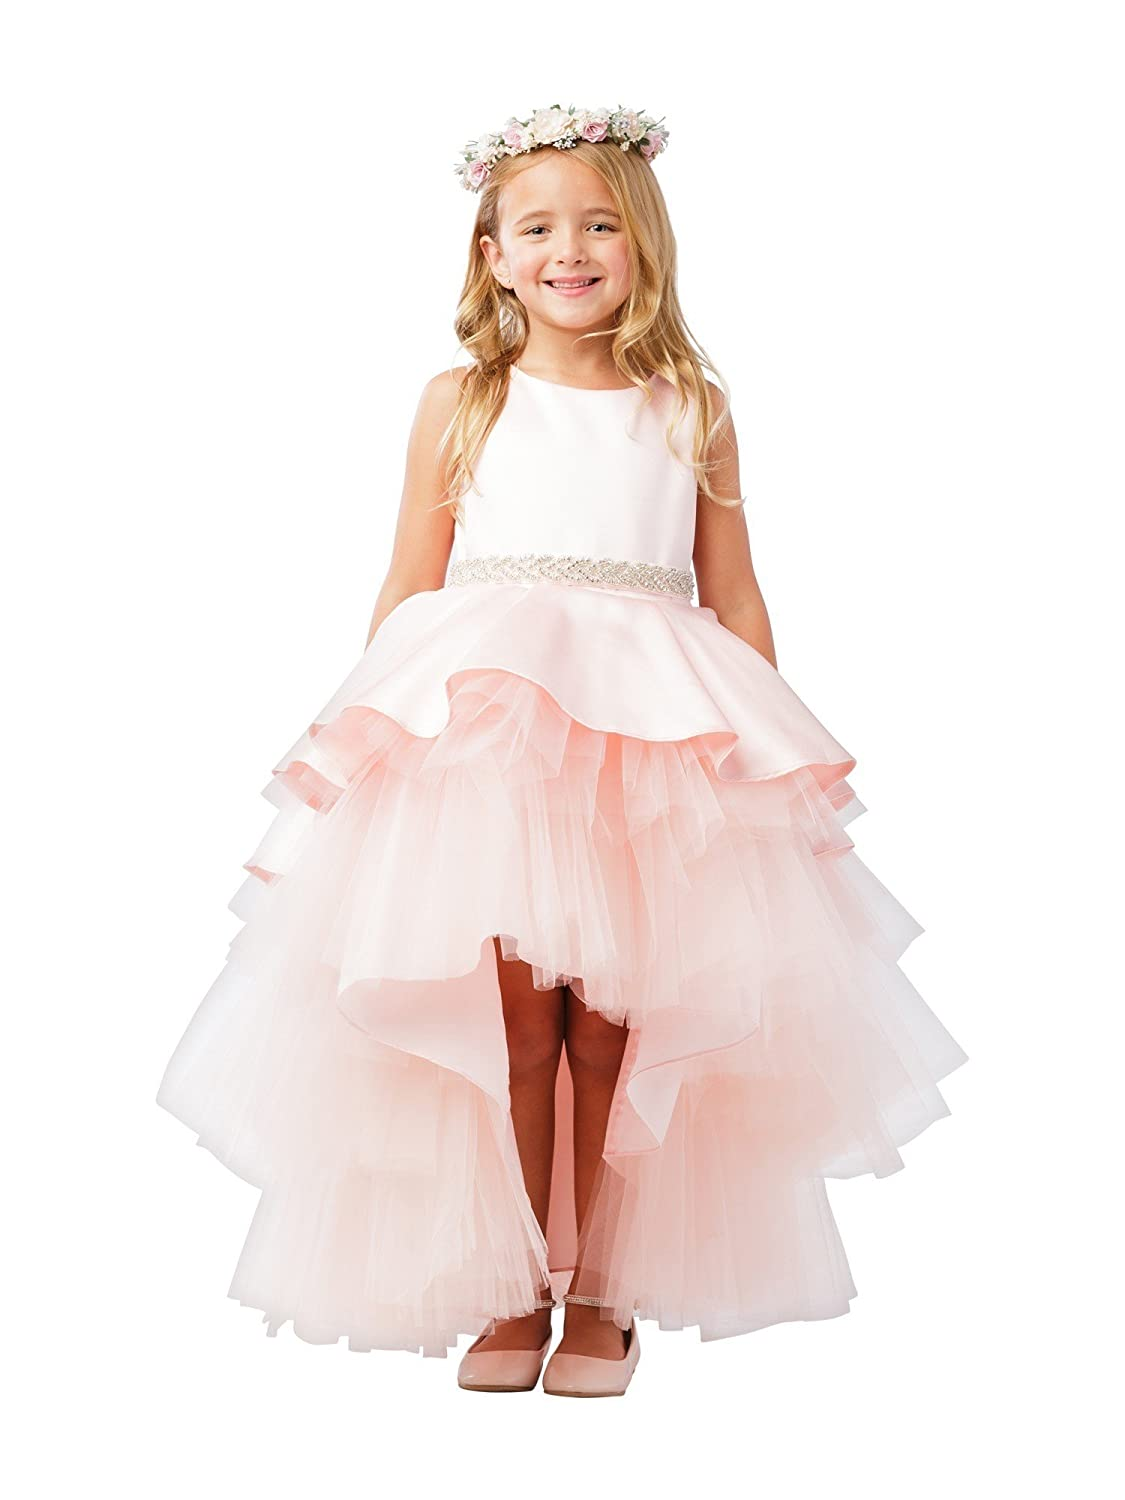 e049c3cd5 Tip Top Kids Big Girls Blush Satin Overlay Rhinestone Hi-Low Junior  Bridesmaid Dress 8-14 - Pink - 14: Amazon.co.uk: Clothing